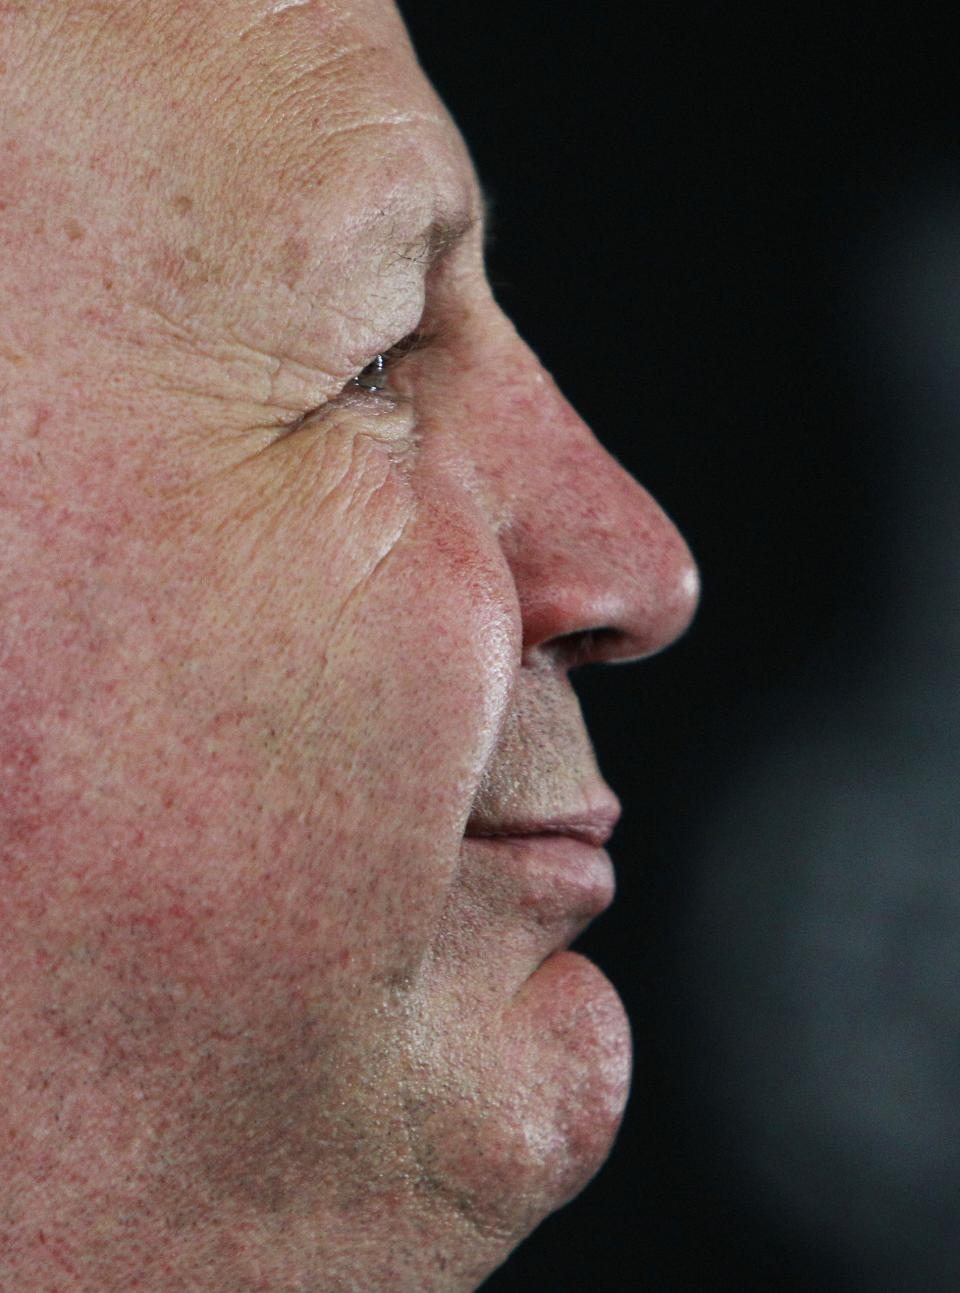 Boston Bruins head coach Claude Julien listens to a reporter's question during a media availability Sunday, June 23, 2013, in Boston. The Bruins will host the Chicago Blackhawks in Game 6 of the NHL hockey Stanley Cup Finals Monday night in Boston. (AP Photo/Bill Sikes)